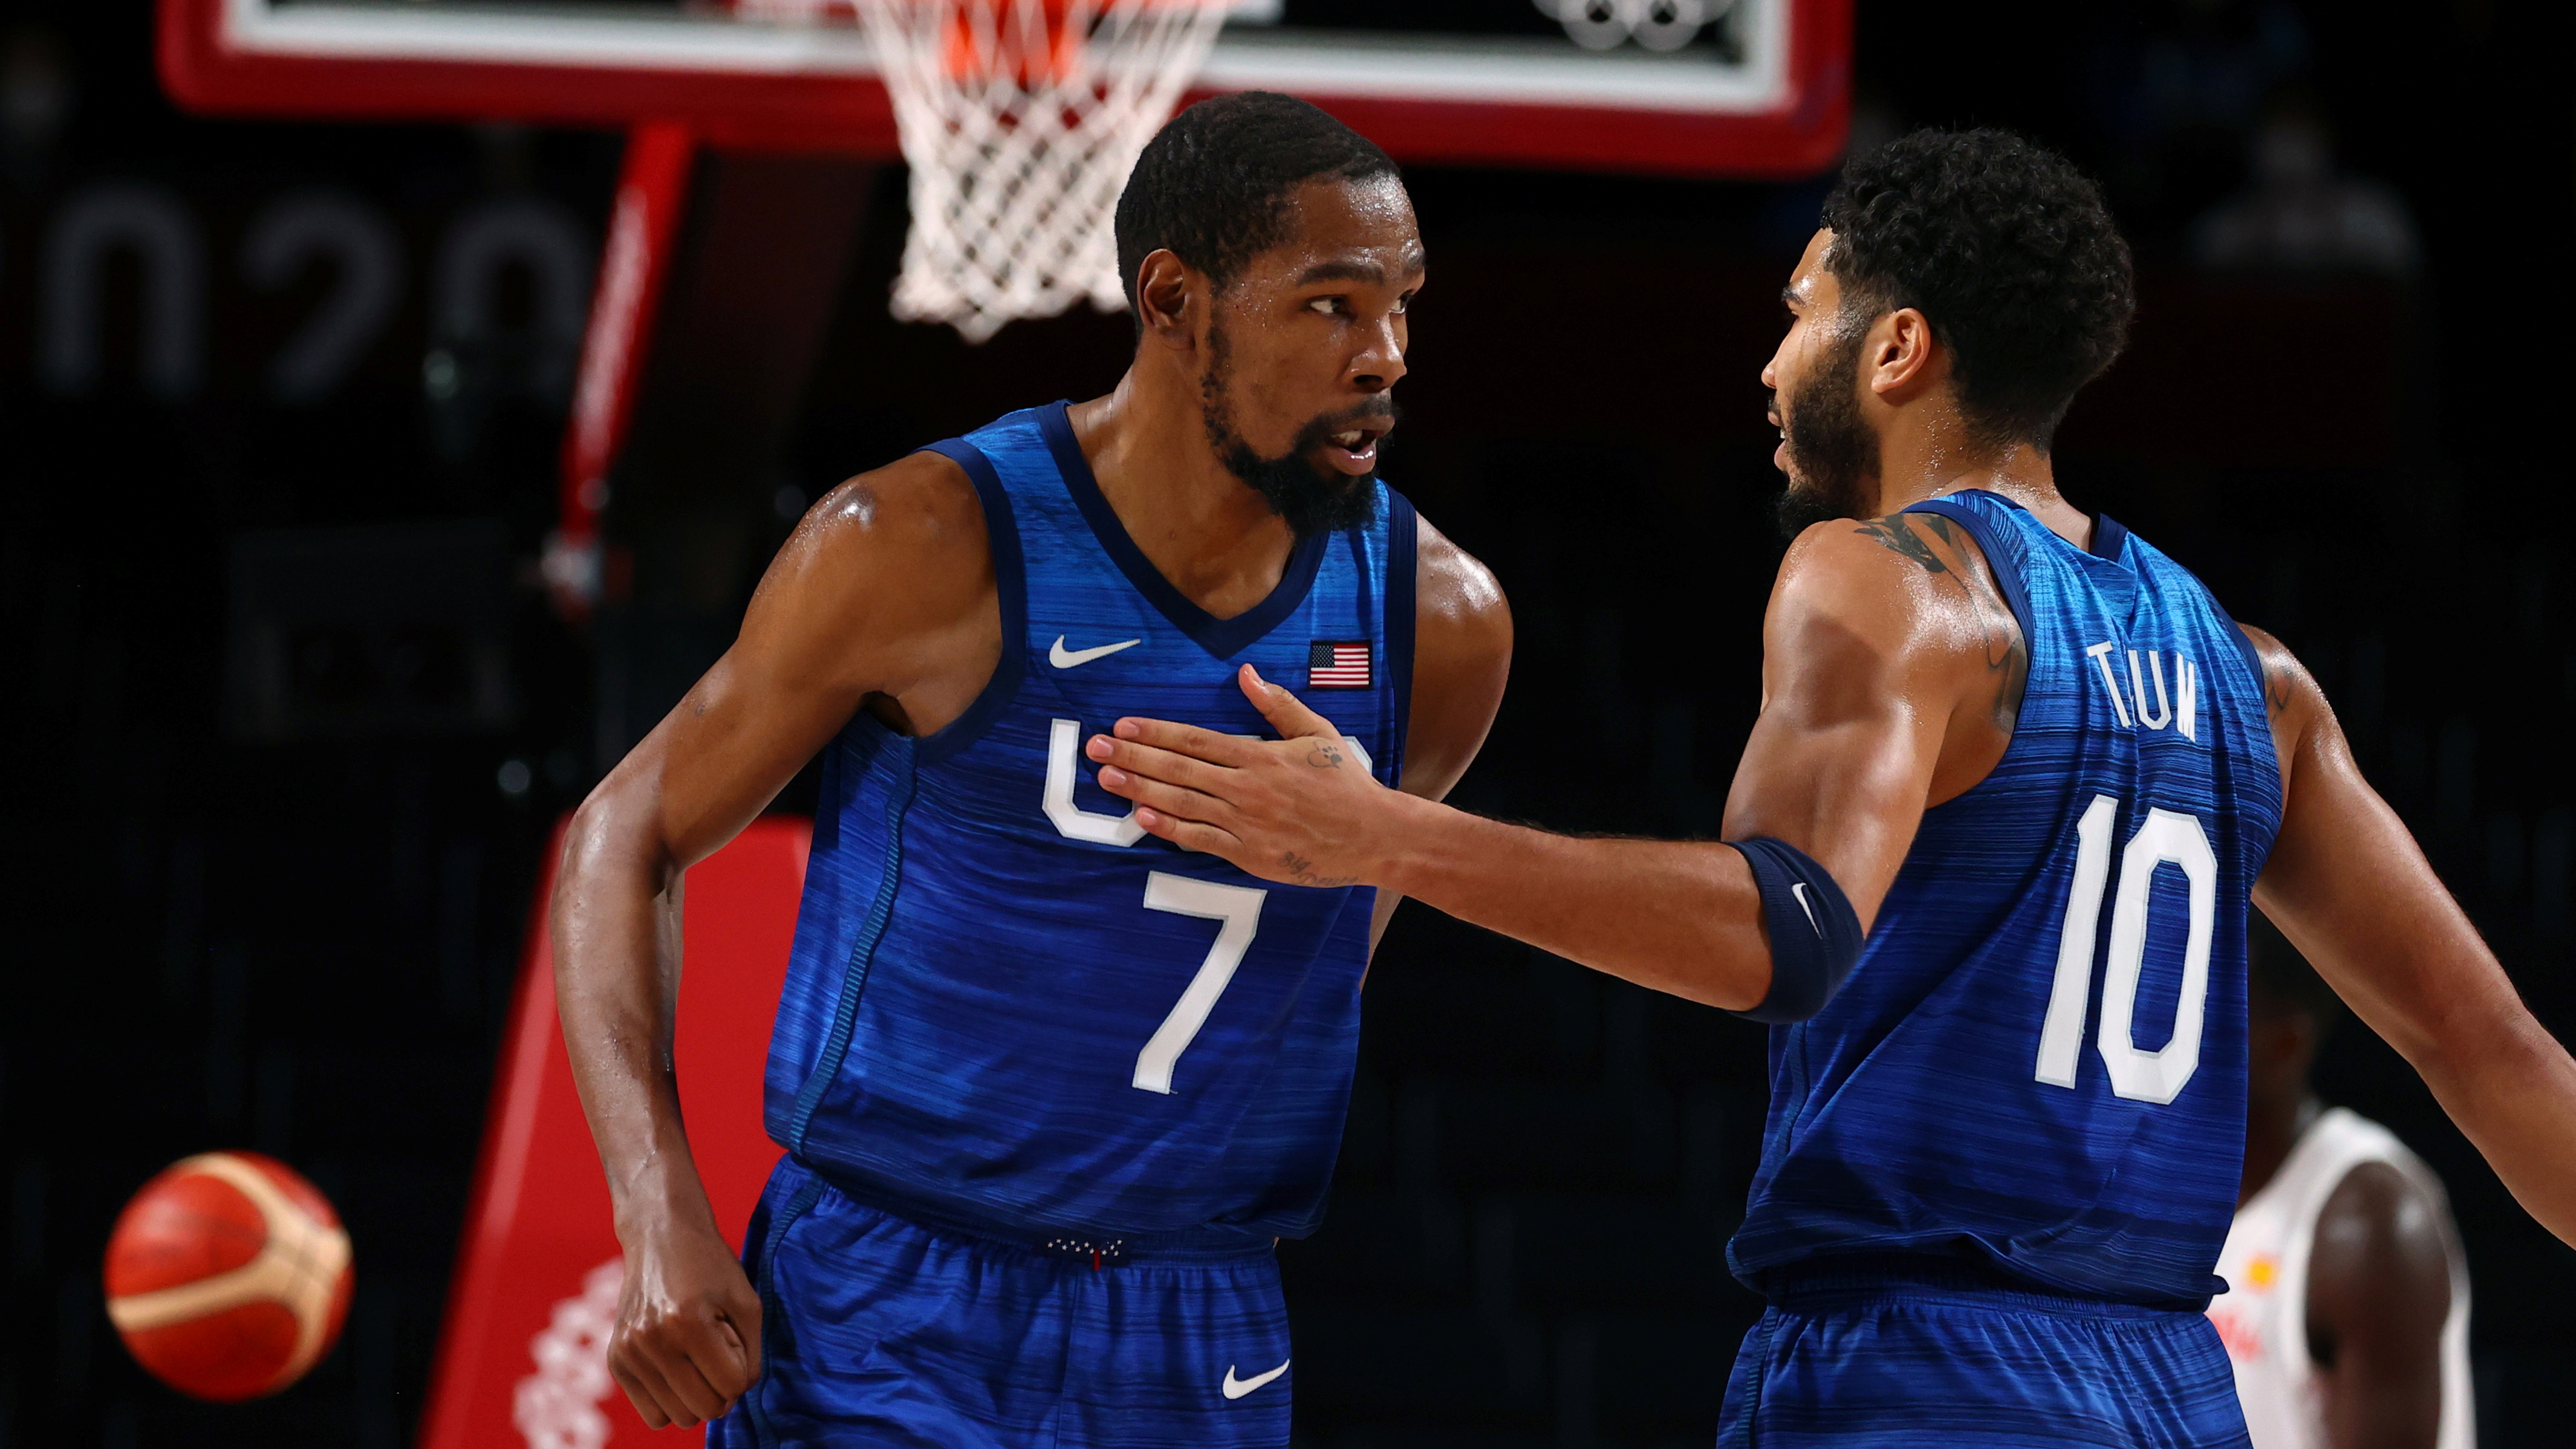 Tokyo 2020 Olympics - Basketball - Men - Quarterfinal - Spain v United States - Saitama Super Arena, Saitama, Japan - August 3, 2021. Kevin Durant of the United States celebrates after scoring a basket with Jayson Tatum of the United States REUTERS/Brian Snyder